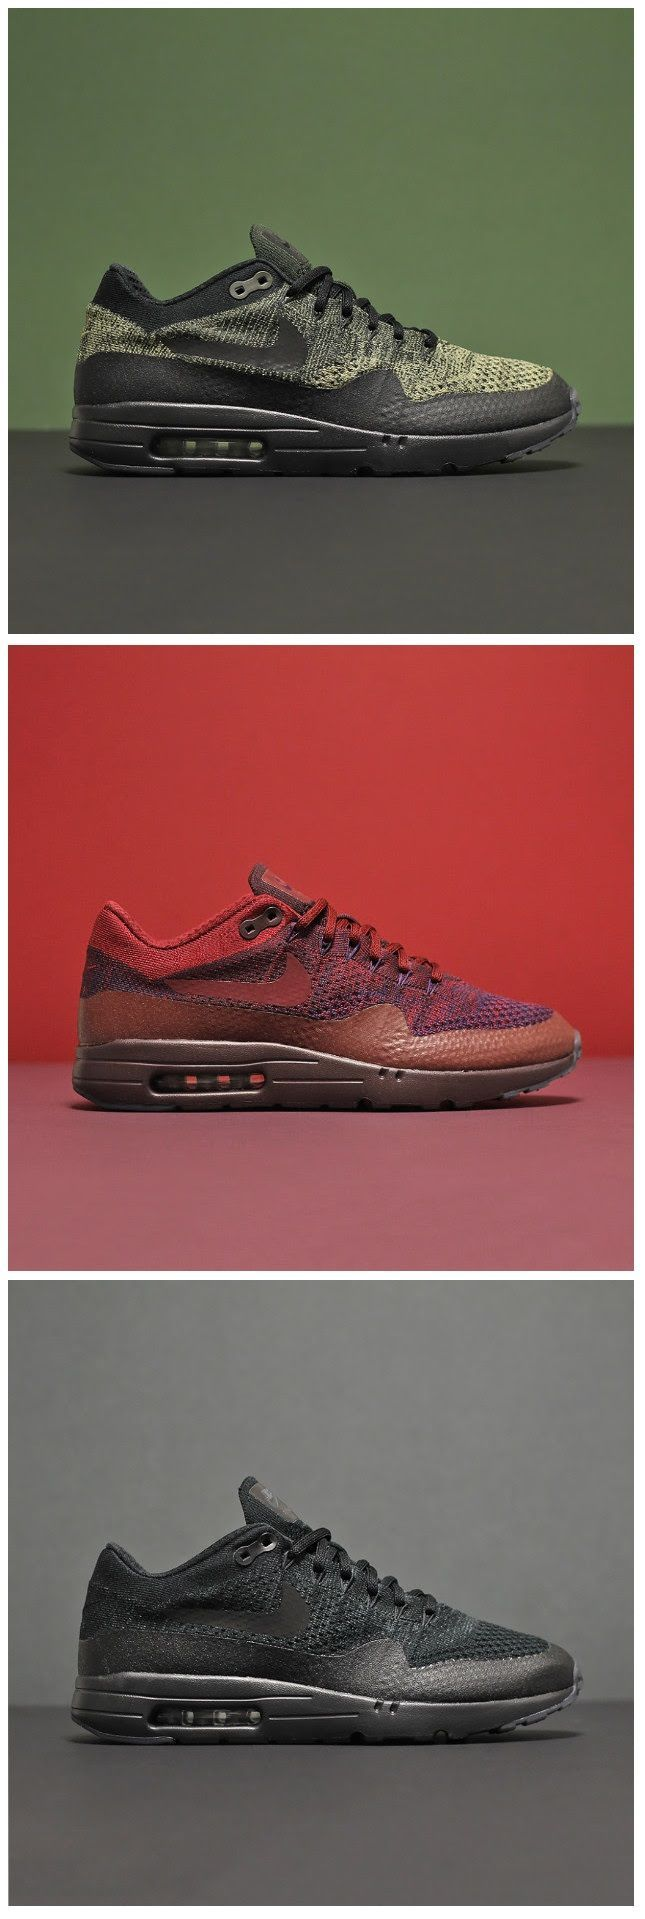 cool Sneakers - Nike Air Max 1 : Nike Air Max 1 Ultra Flyknit...